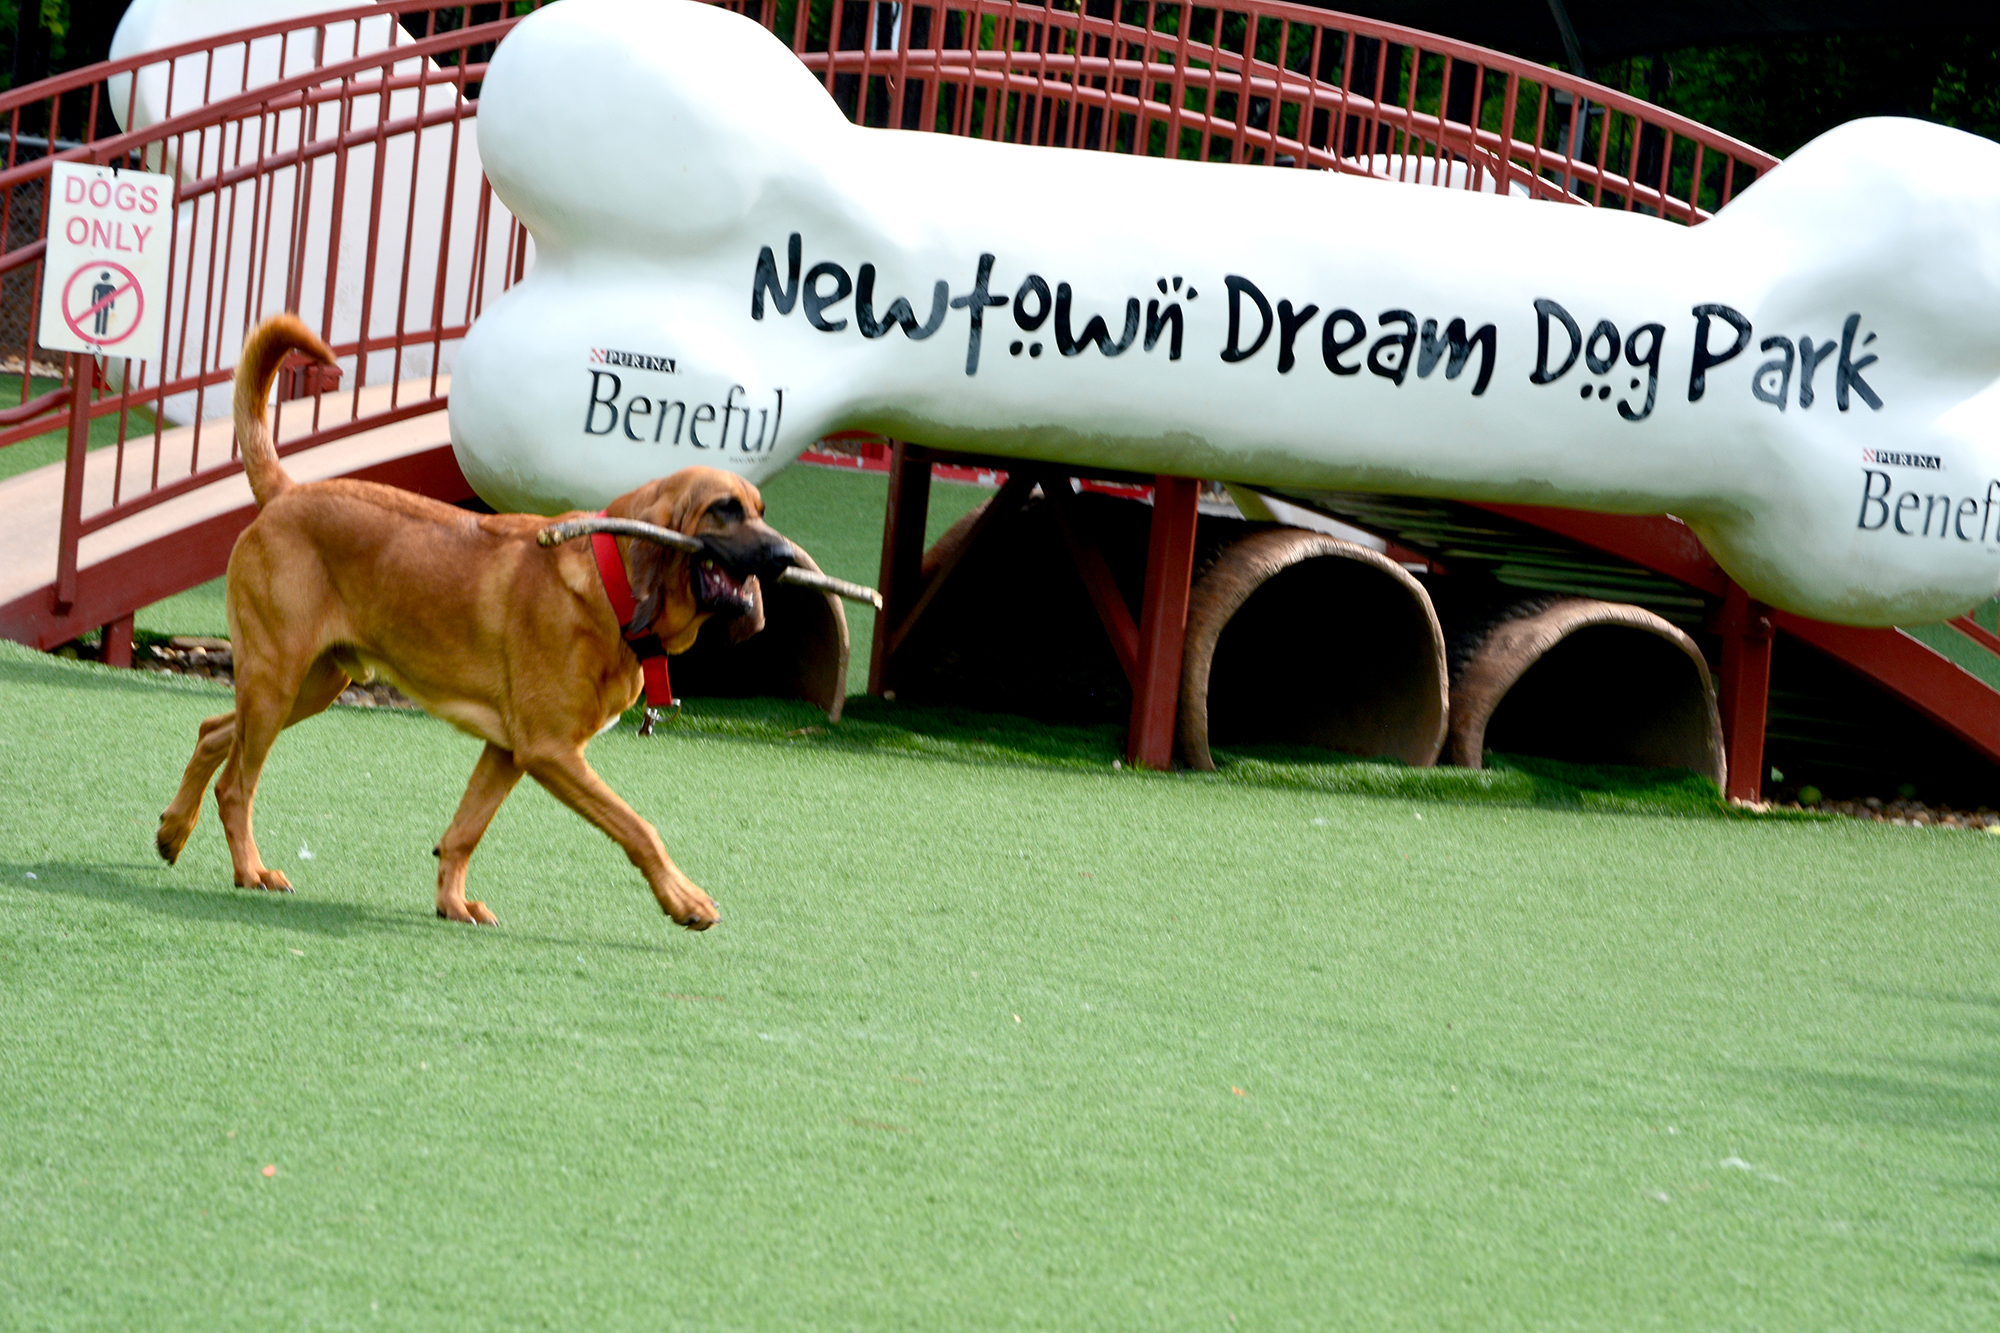 Newtown Dream Dog Park named Best Dog Park